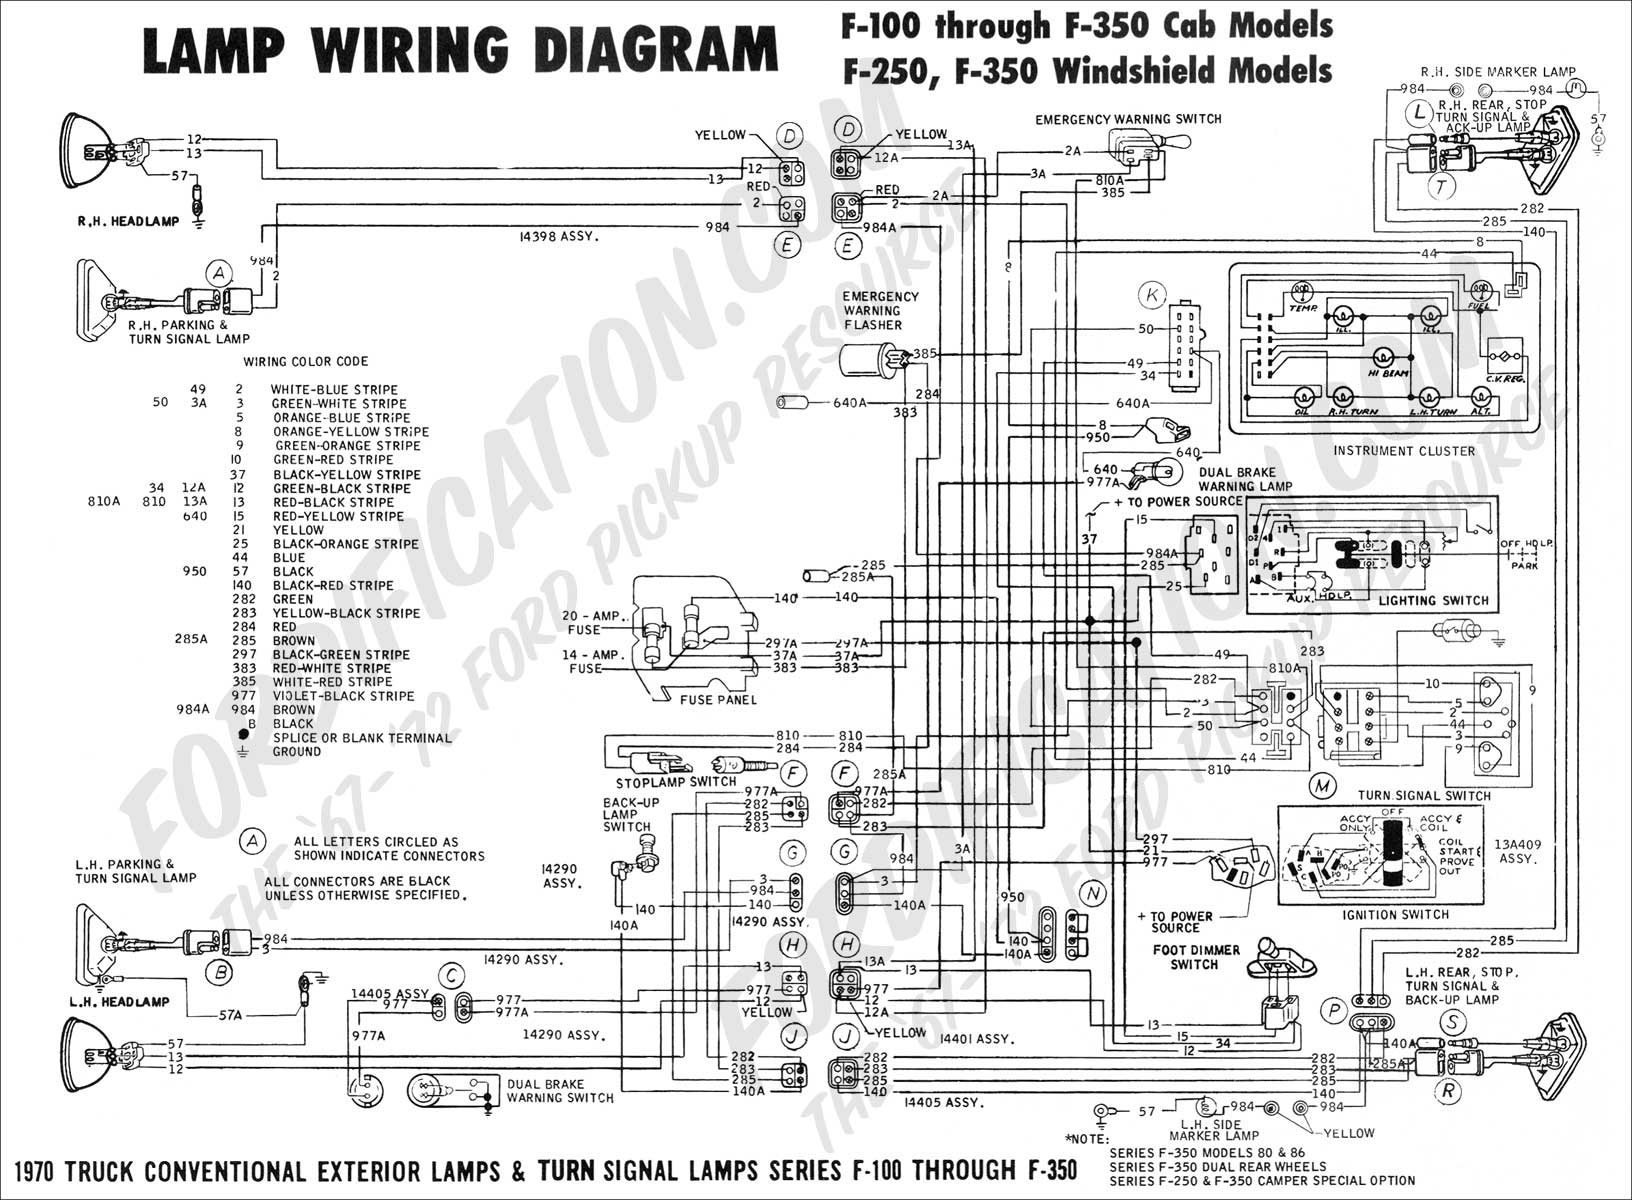 United Trailer Wiring Diagram | Manual E-Books - United Trailer Wiring Diagram